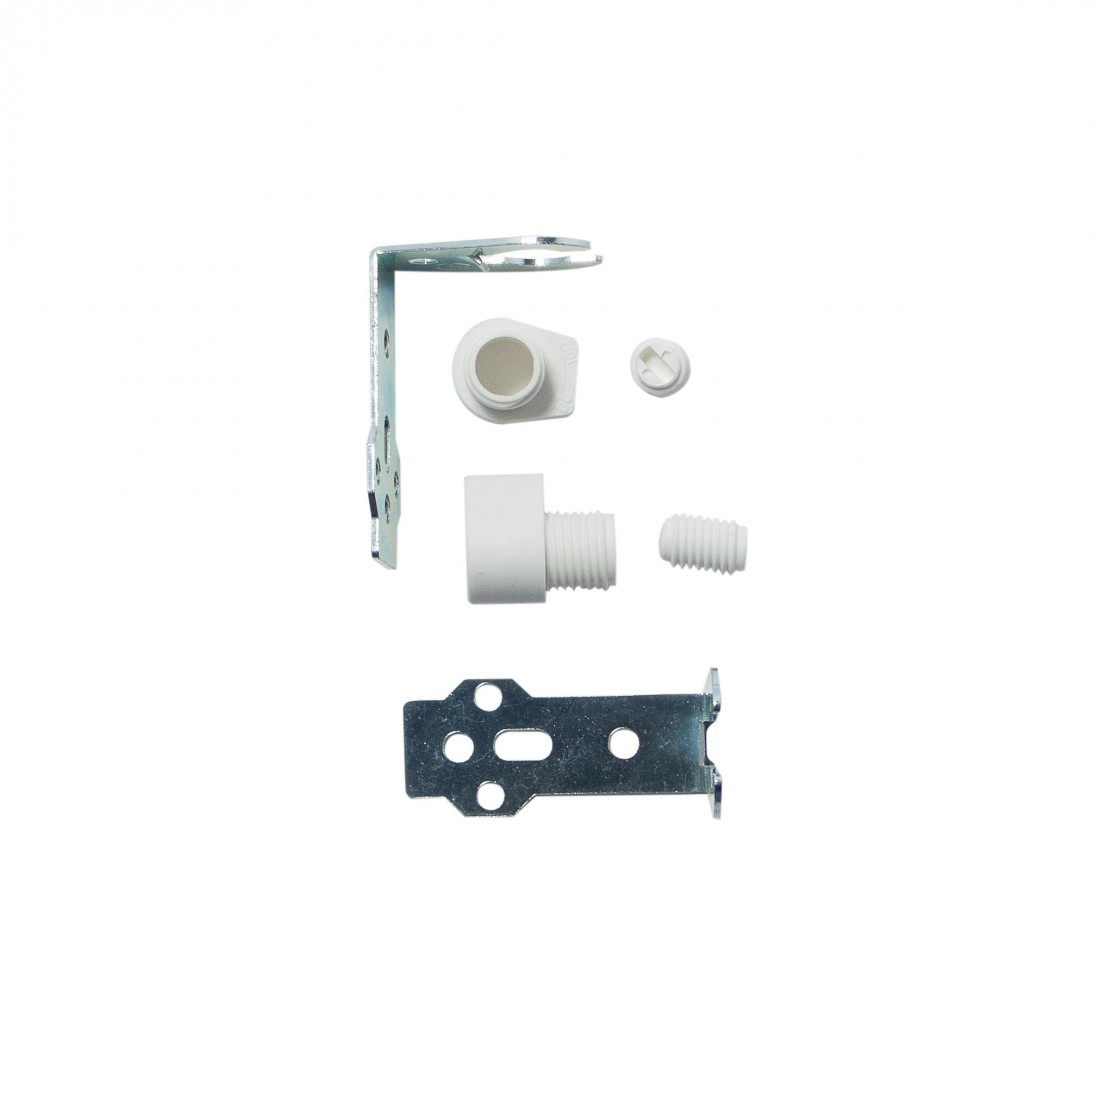 White bracket for E14 lamp holder (2 pcs)